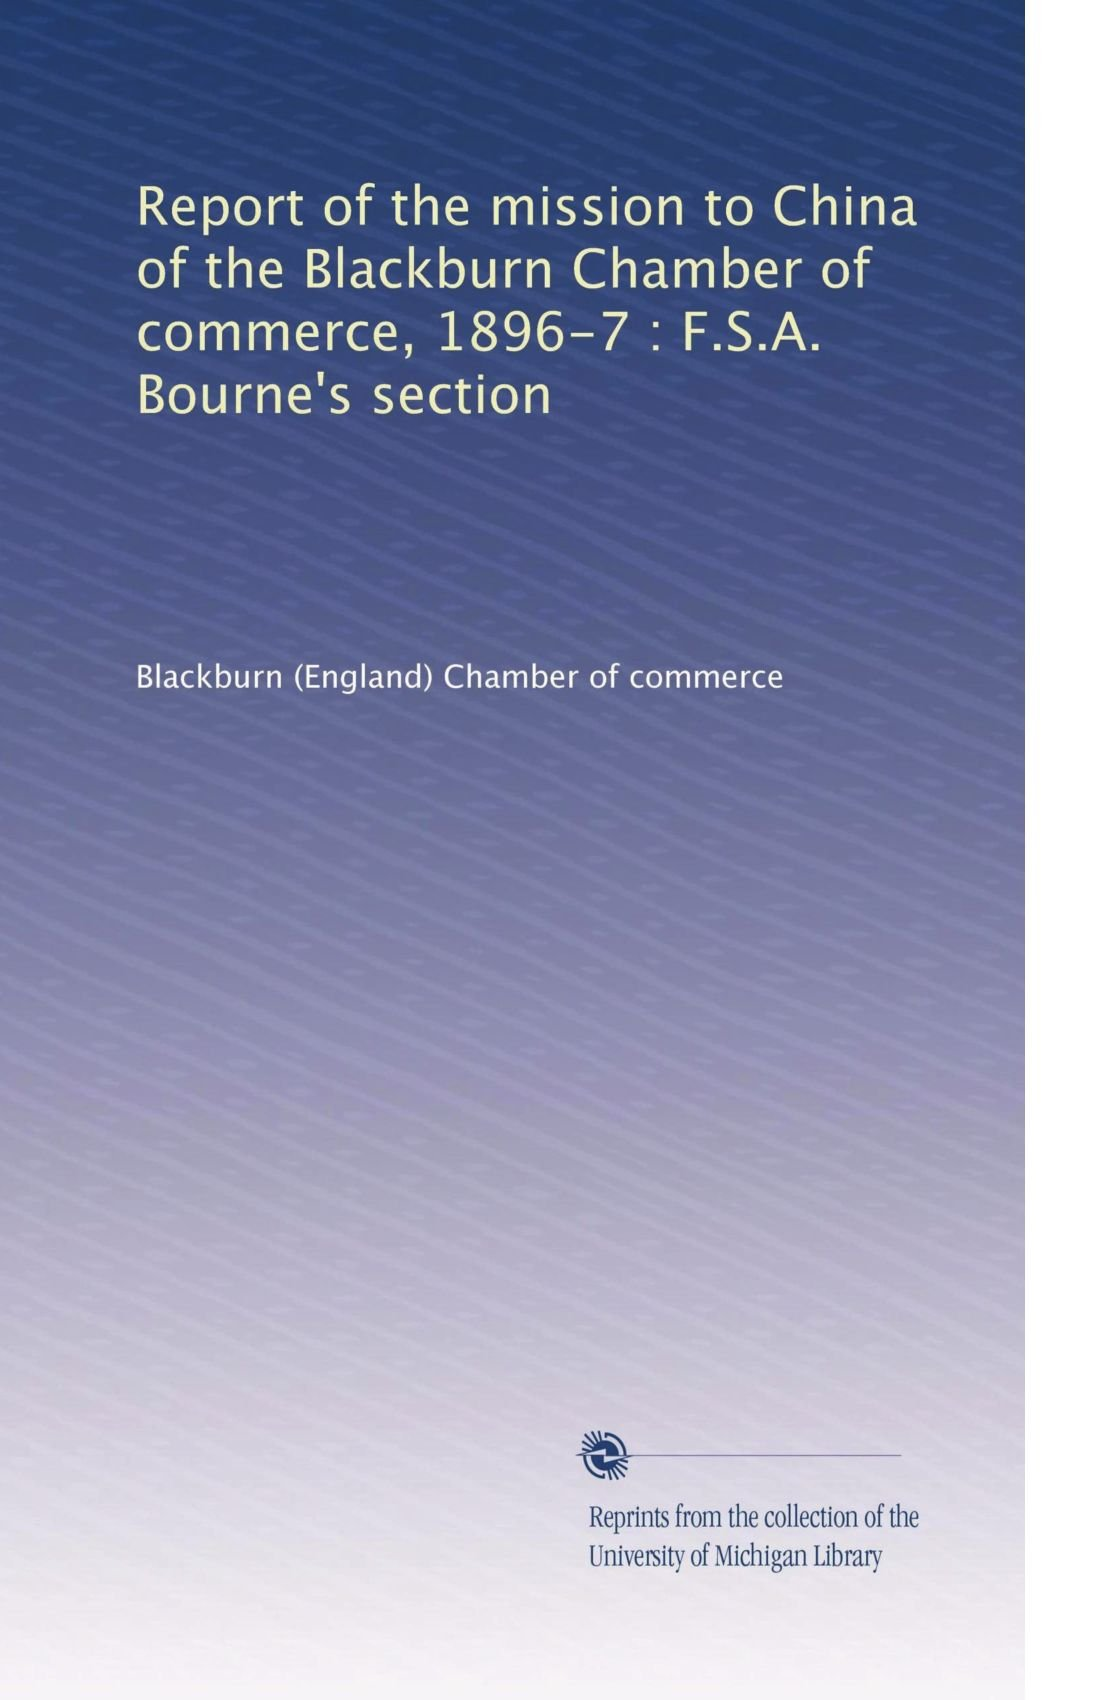 Report of the mission to China of the Blackburn Chamber of commerce, 1896-7 : F.S.A. Bourne's section ebook